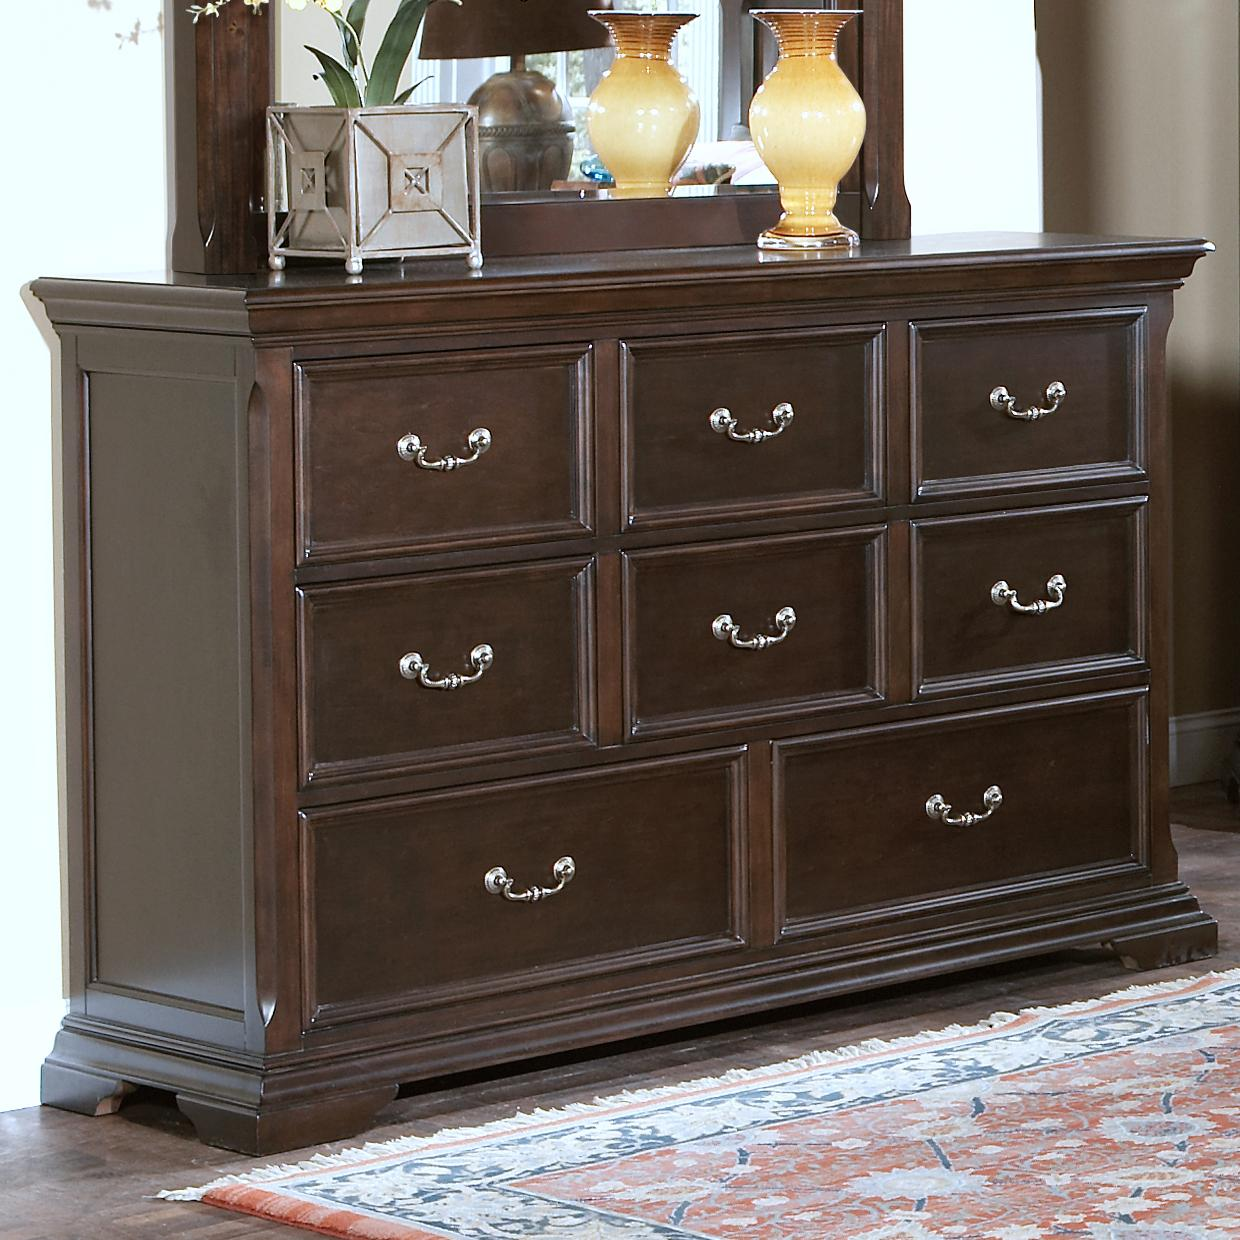 New Classic Timber City 8 Drawer Dresser - Item Number: 00-007-050